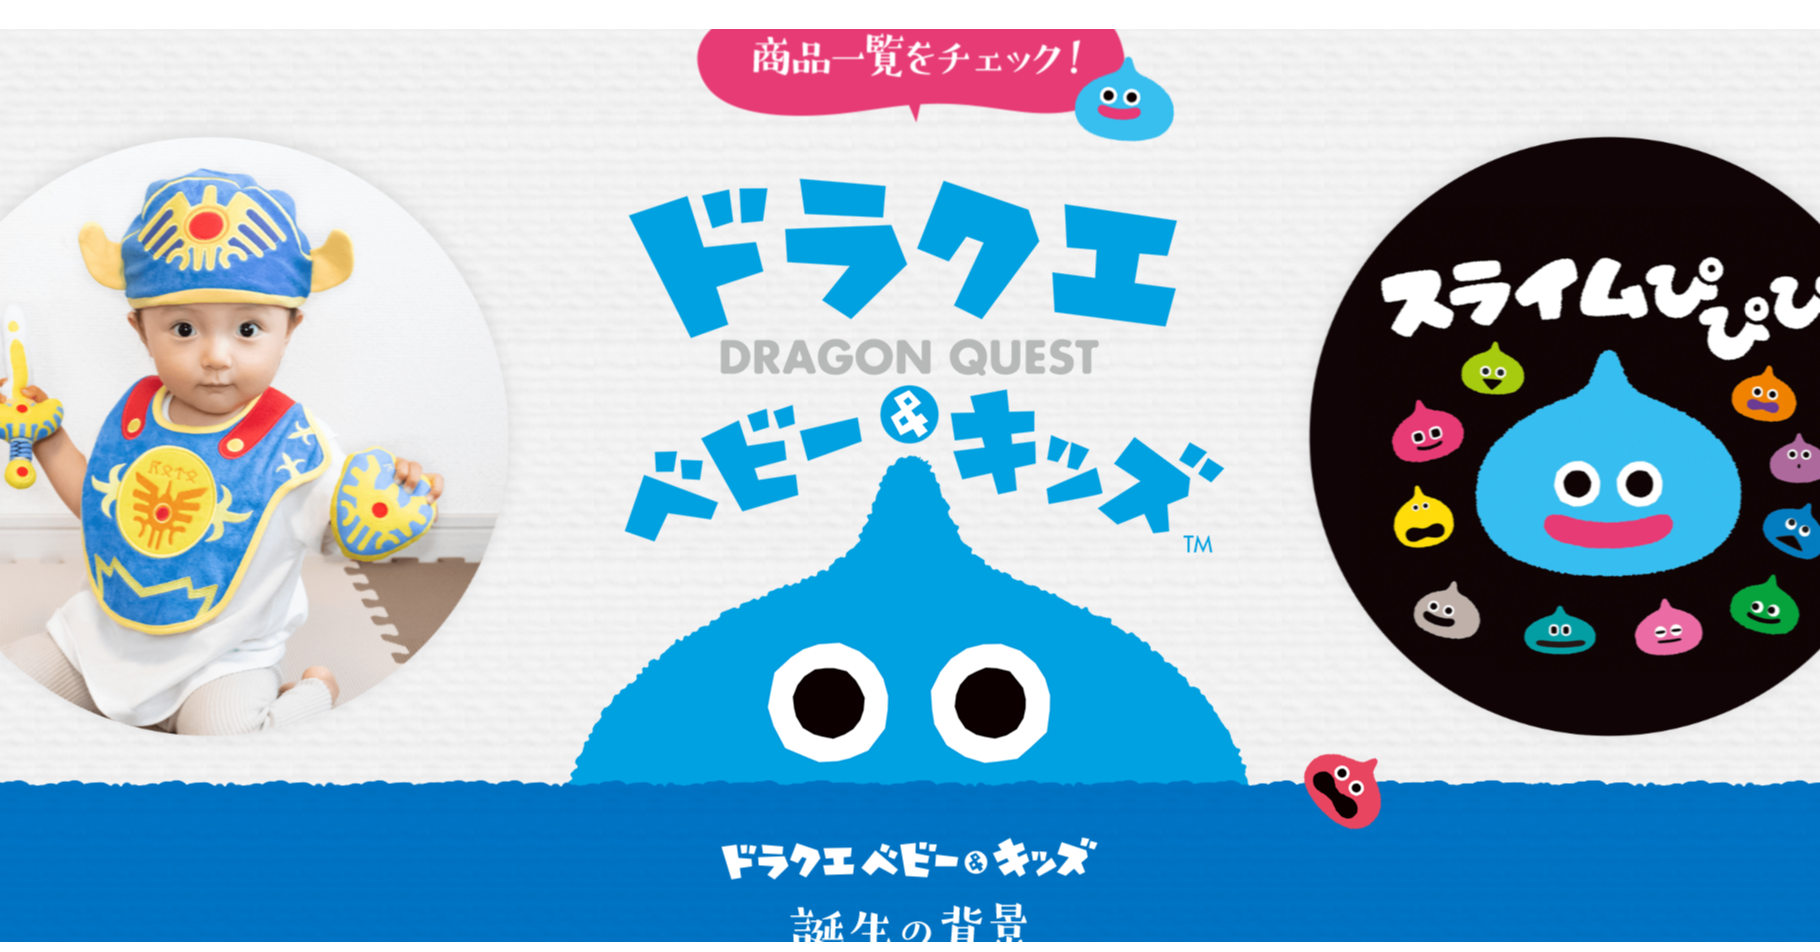 Dragon Quest, Dragon Quest XI, Dragon Quest X, , Square Enix Co., Ltd., Nintendo Switch, Video Games, , Nintendo, Enix, cartoon, Illustration, Graphic design